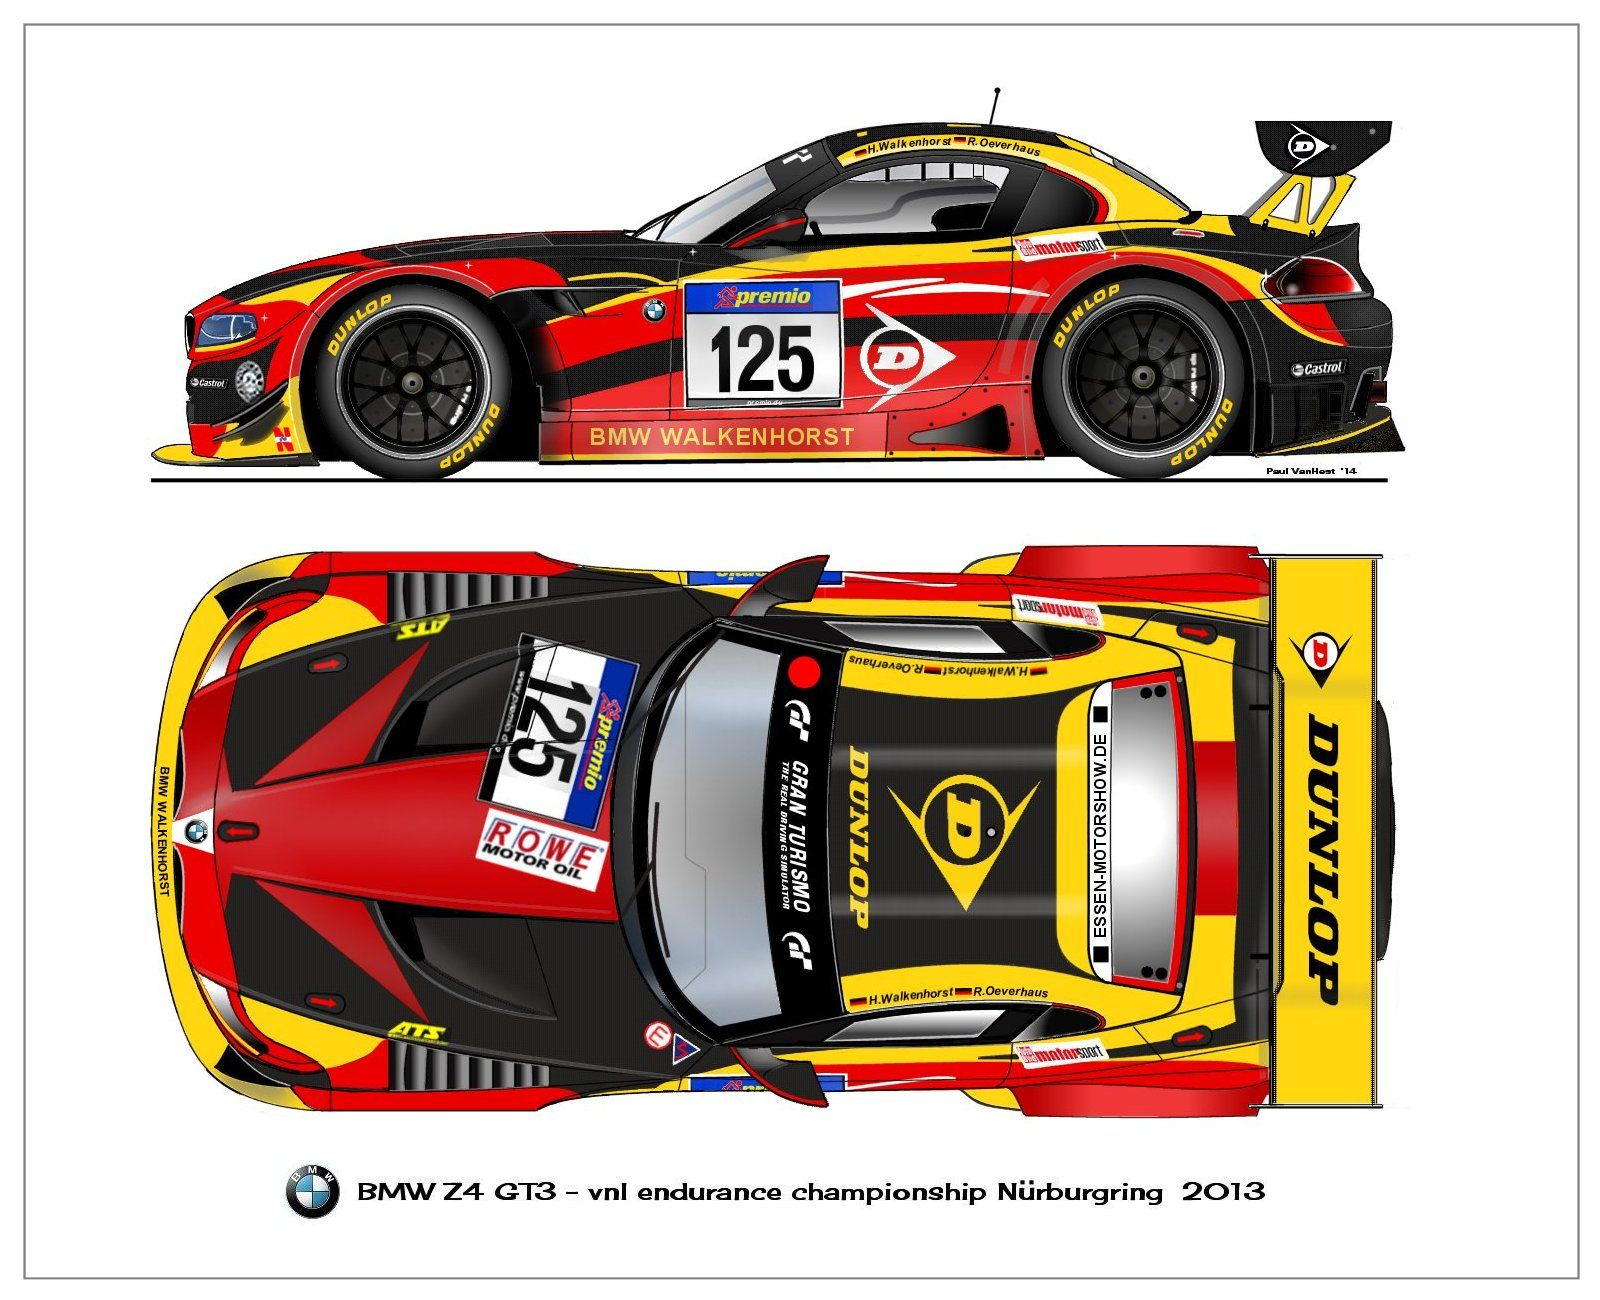 Bmw Z4 Gt3 Drift Cars Pinterest Bmw Z4 Bmw And Cars